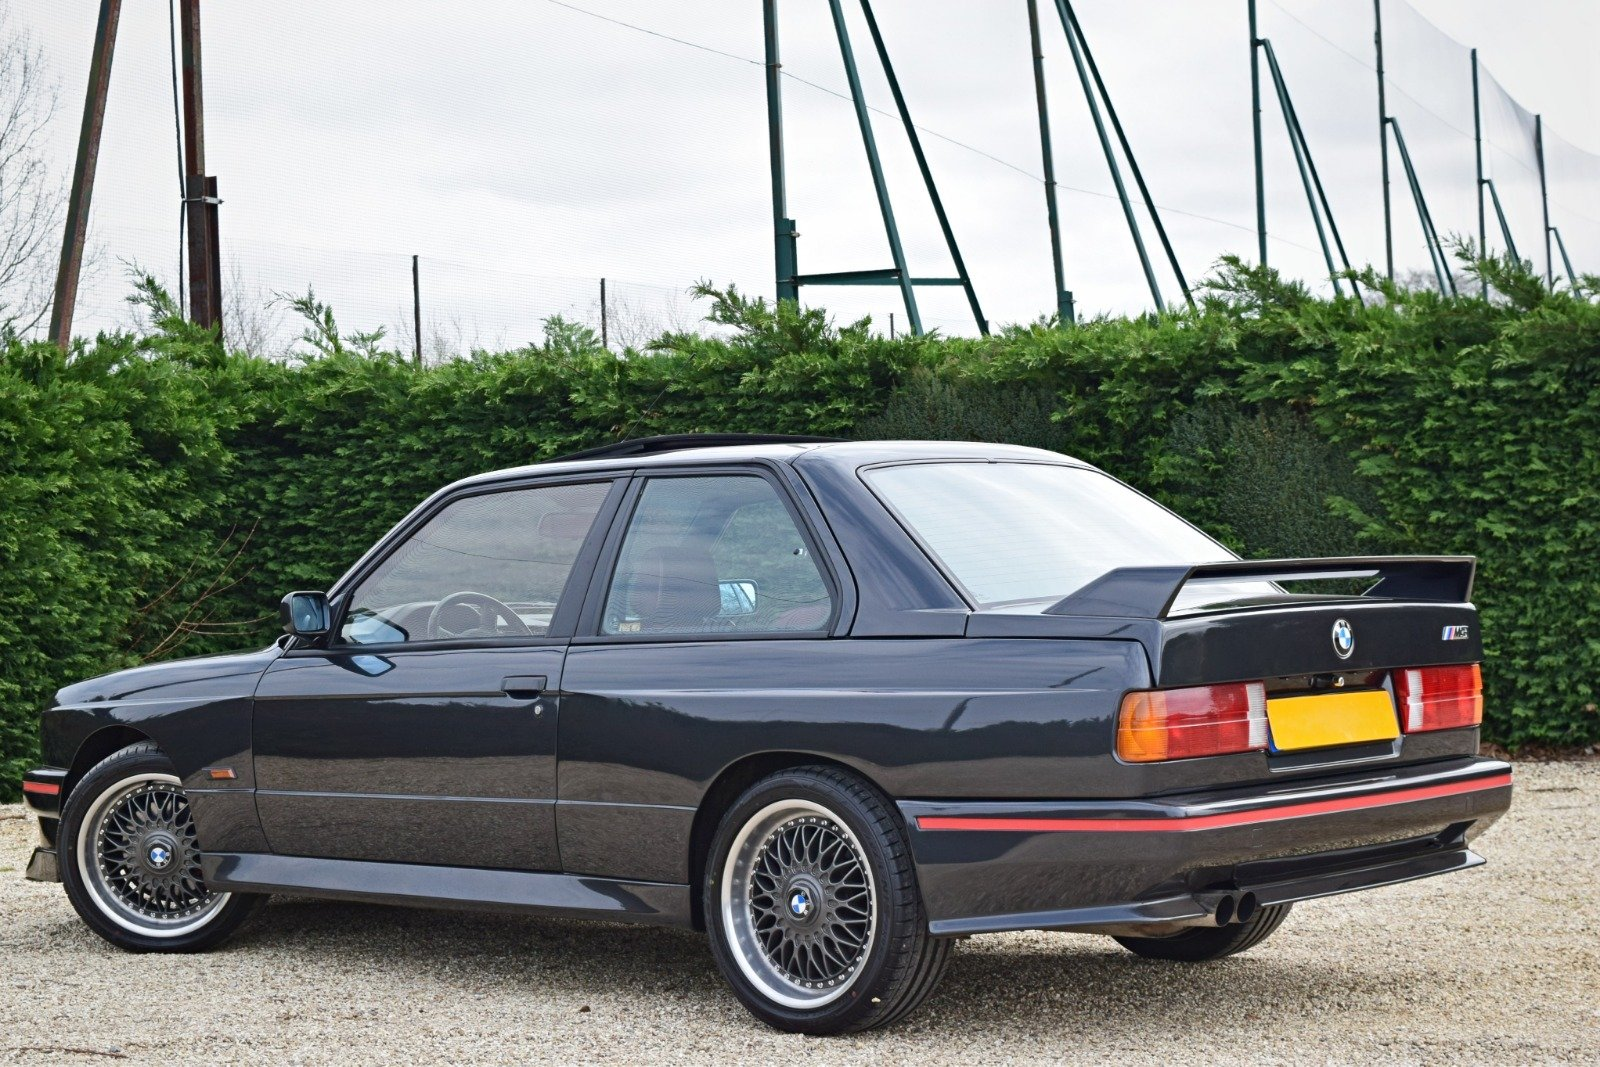 BMW M3 E30 2.3 PETROL MANUAL 1992/K BLACK For Sale (picture 4 of 6)